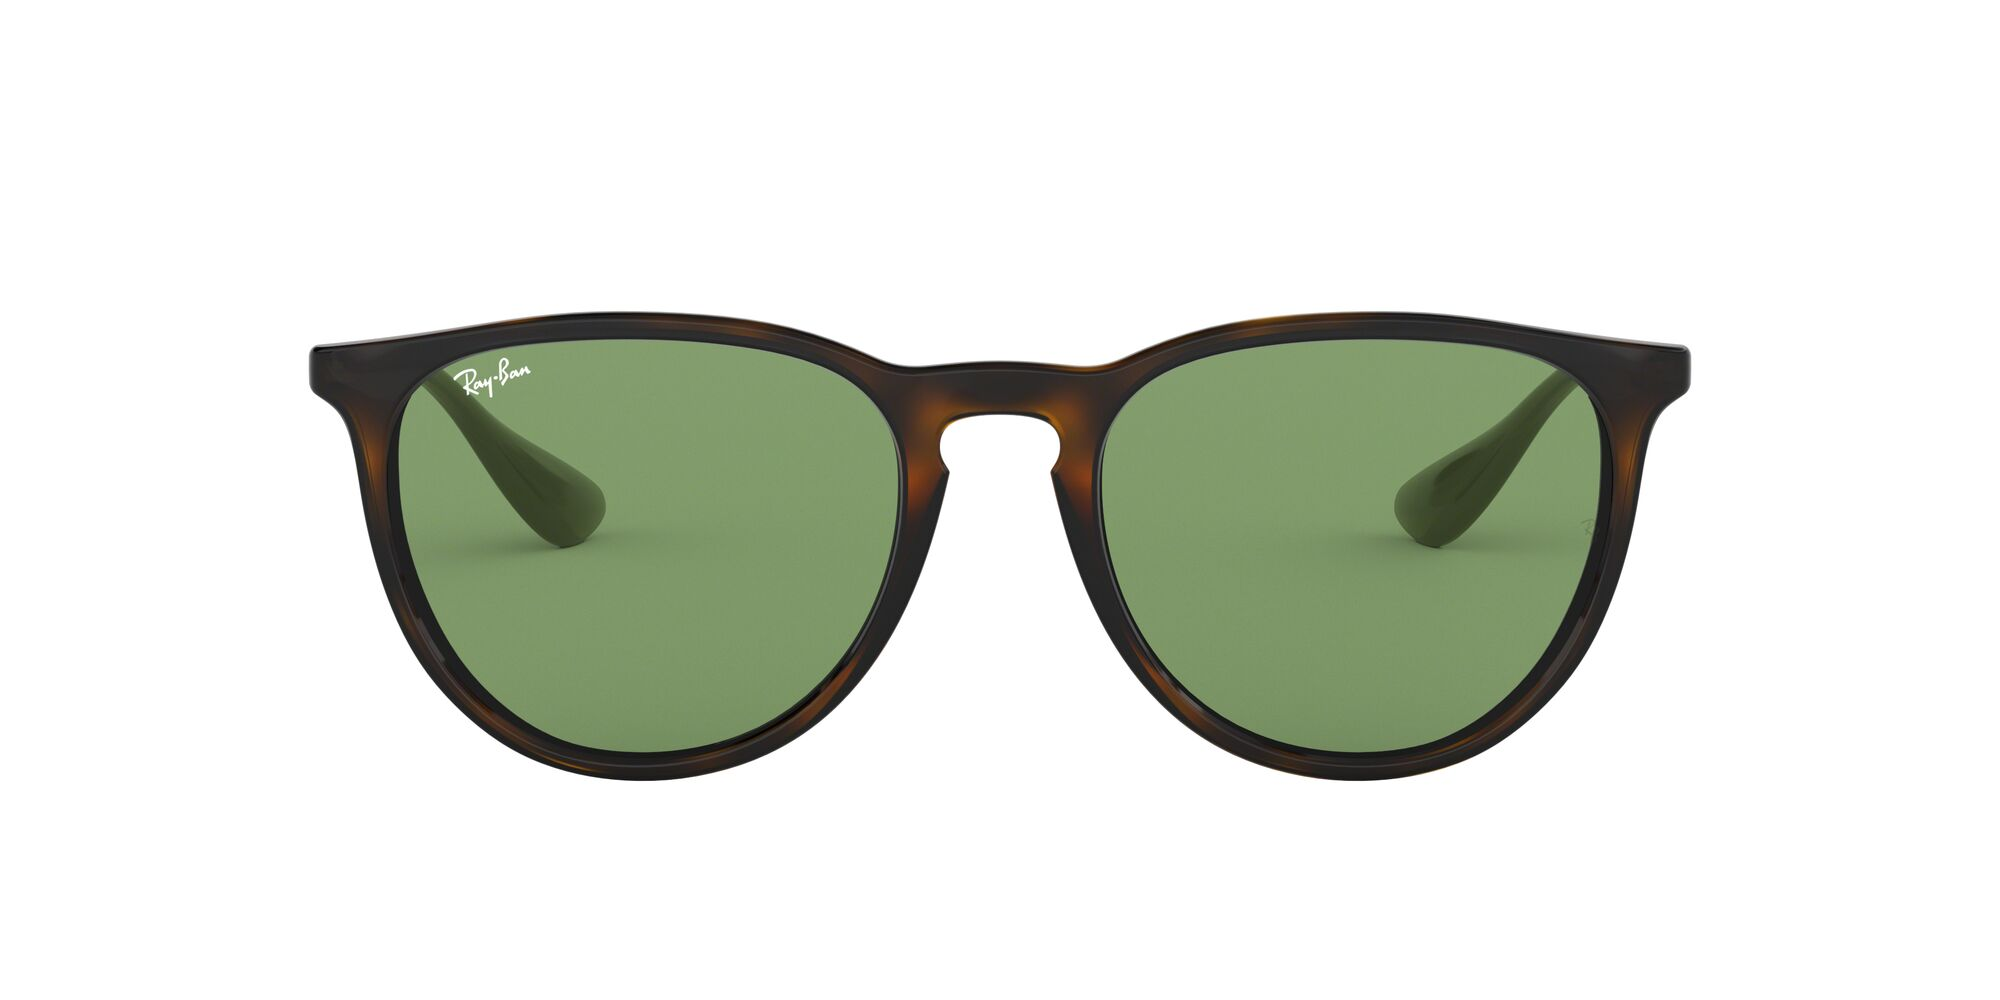 Front Ray-Ban Ray-Ban 0RB4171 6393/2 54/18 Bruin/Groen